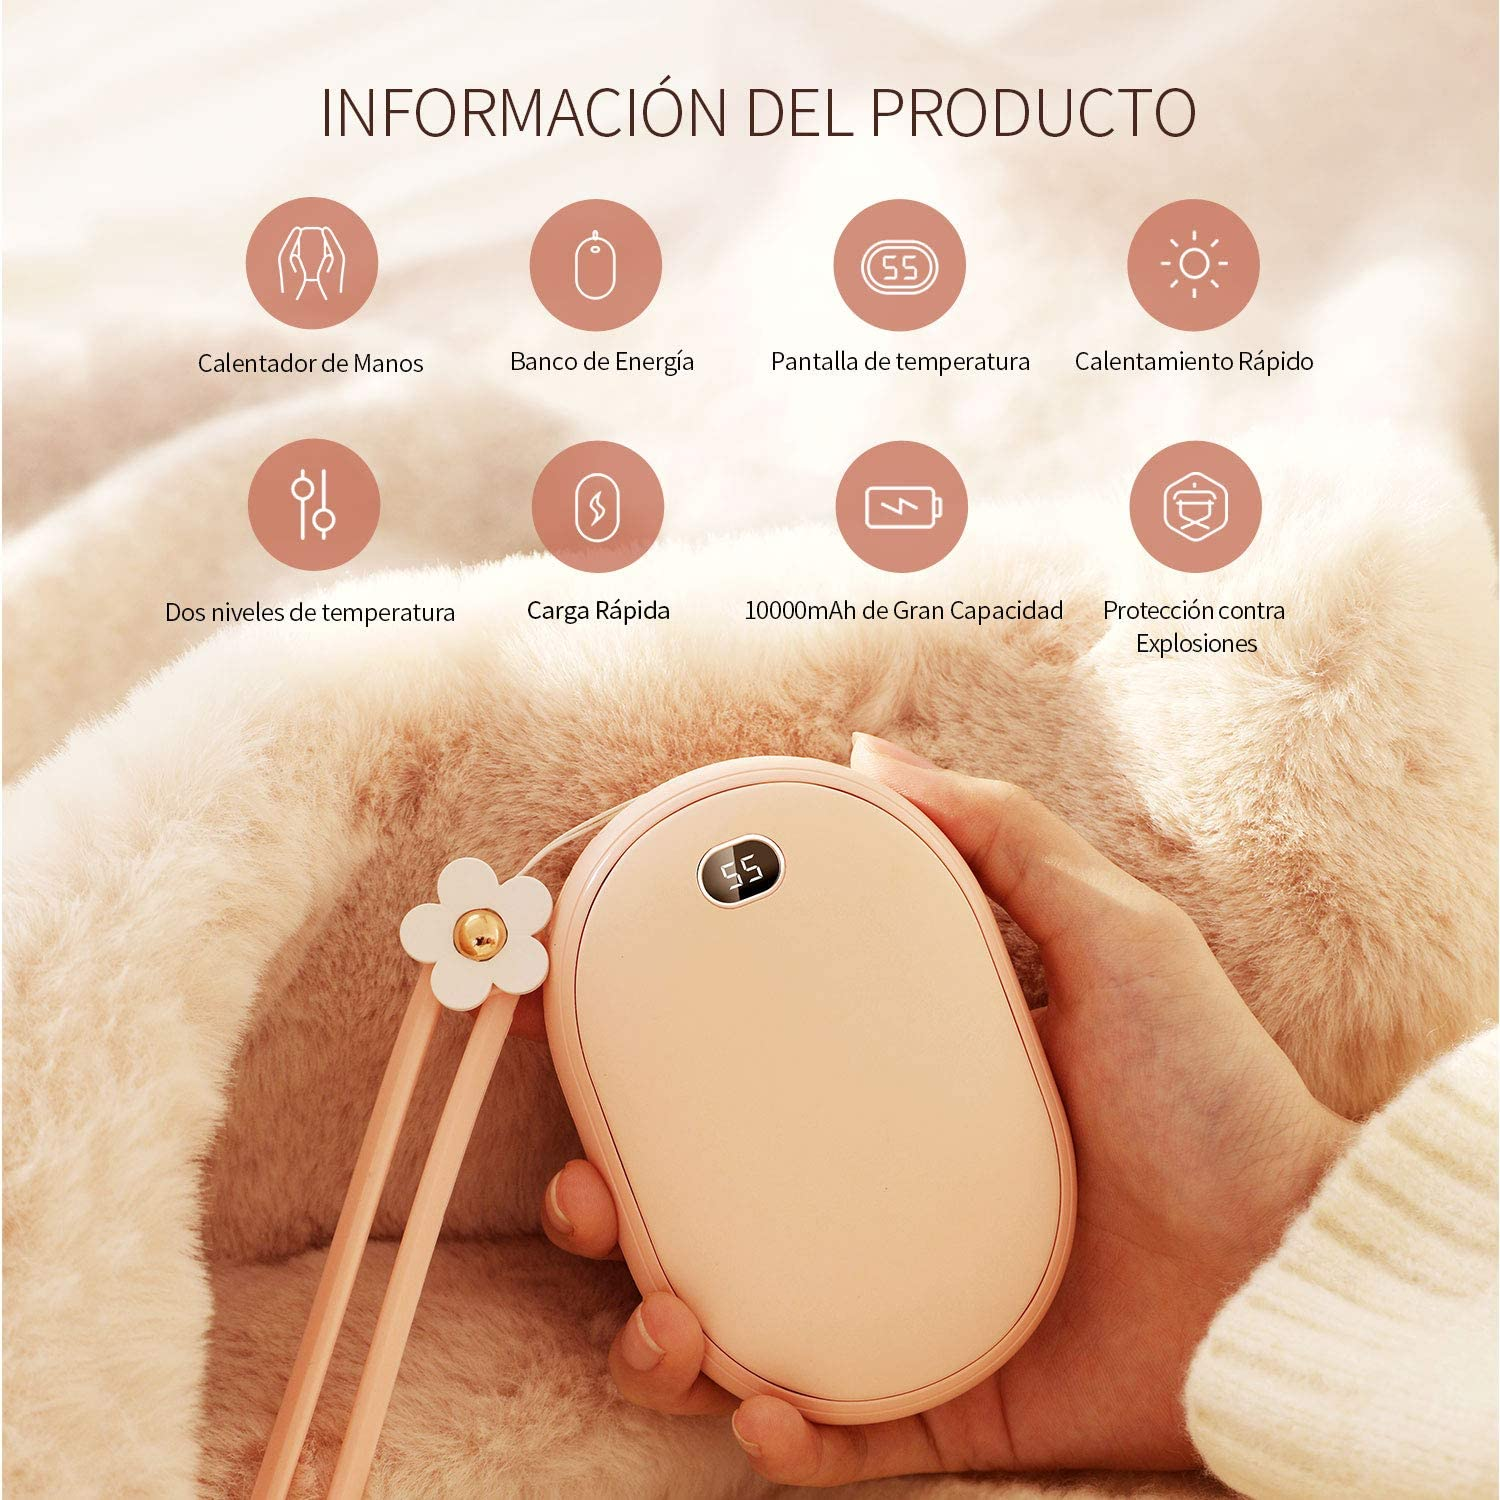 Best Gift For Women,Men,Kids in Cold Winter,Real-time temperature display SmartDevil 10000mAh USB Hand Warmers Electric Rechargeable Pocket Hand Heater Fast Heating Power Banks for All Smartphones